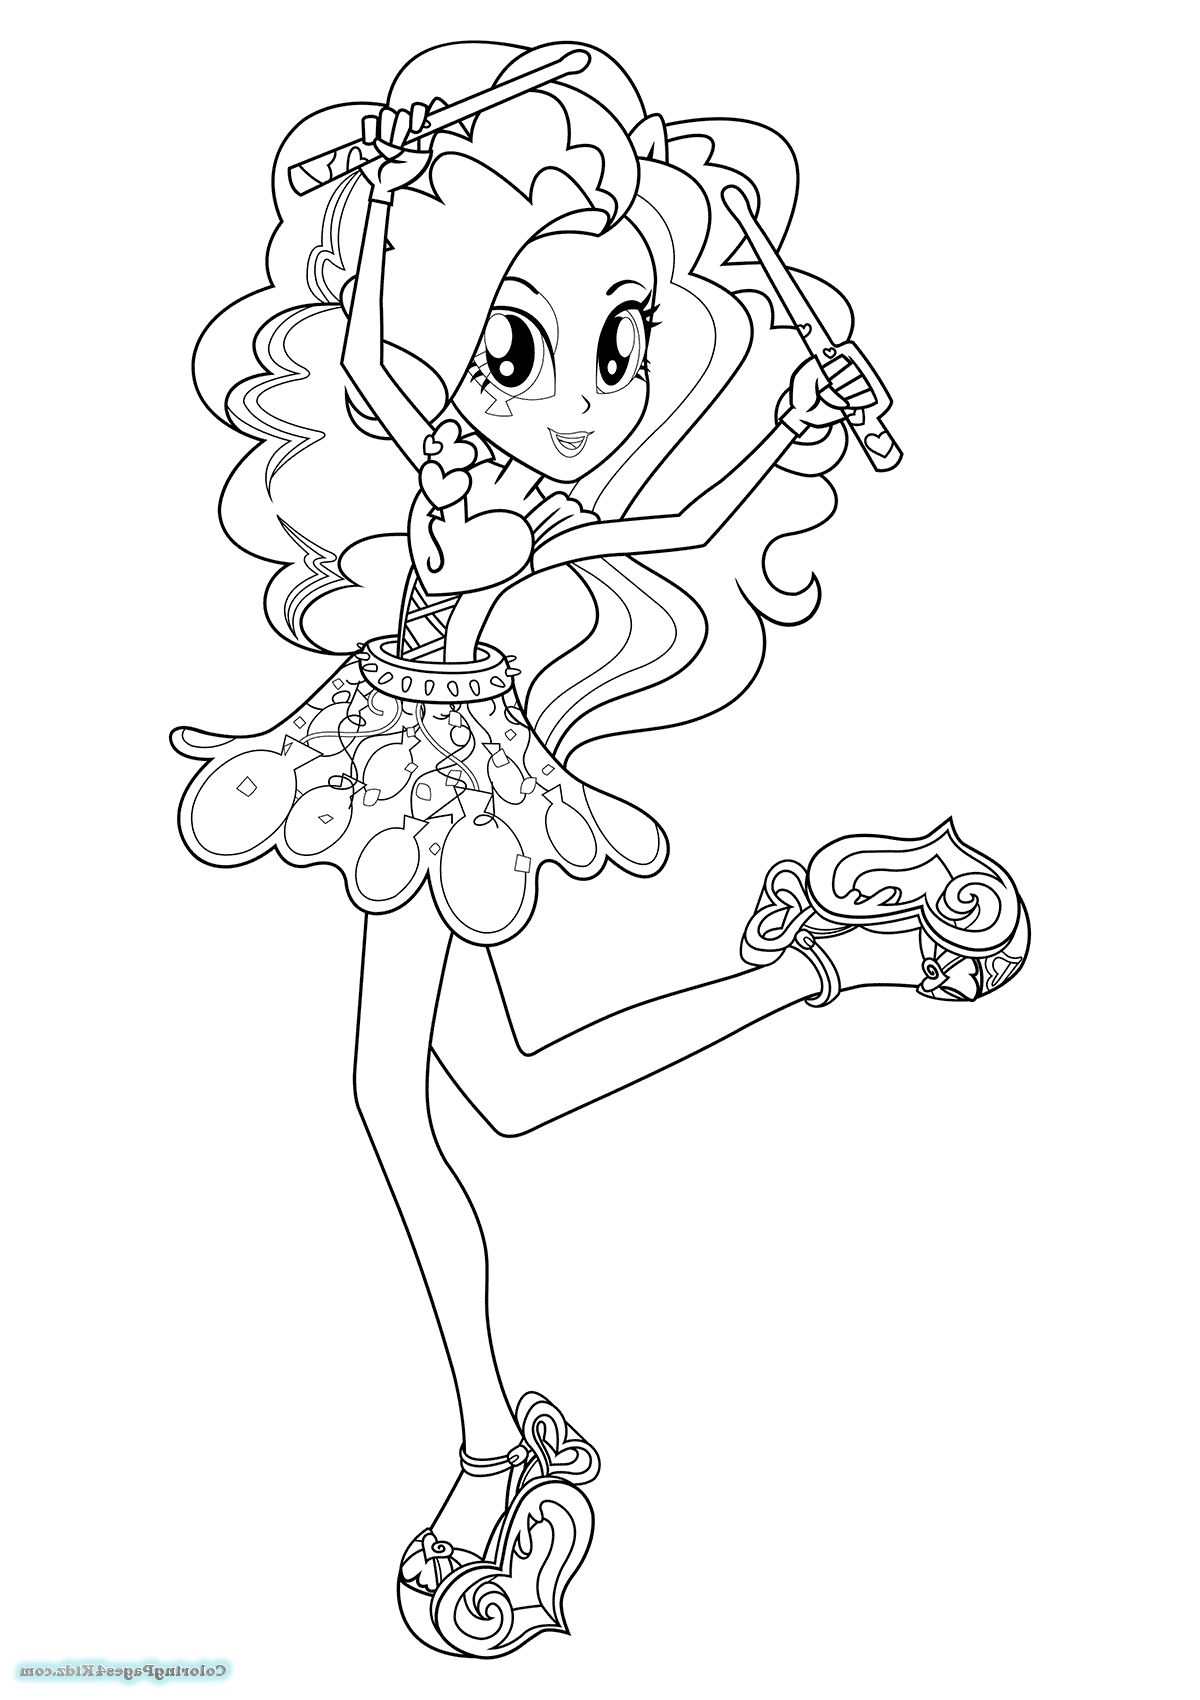 Equestria Girls Rainbow Rocks Coloring Pages